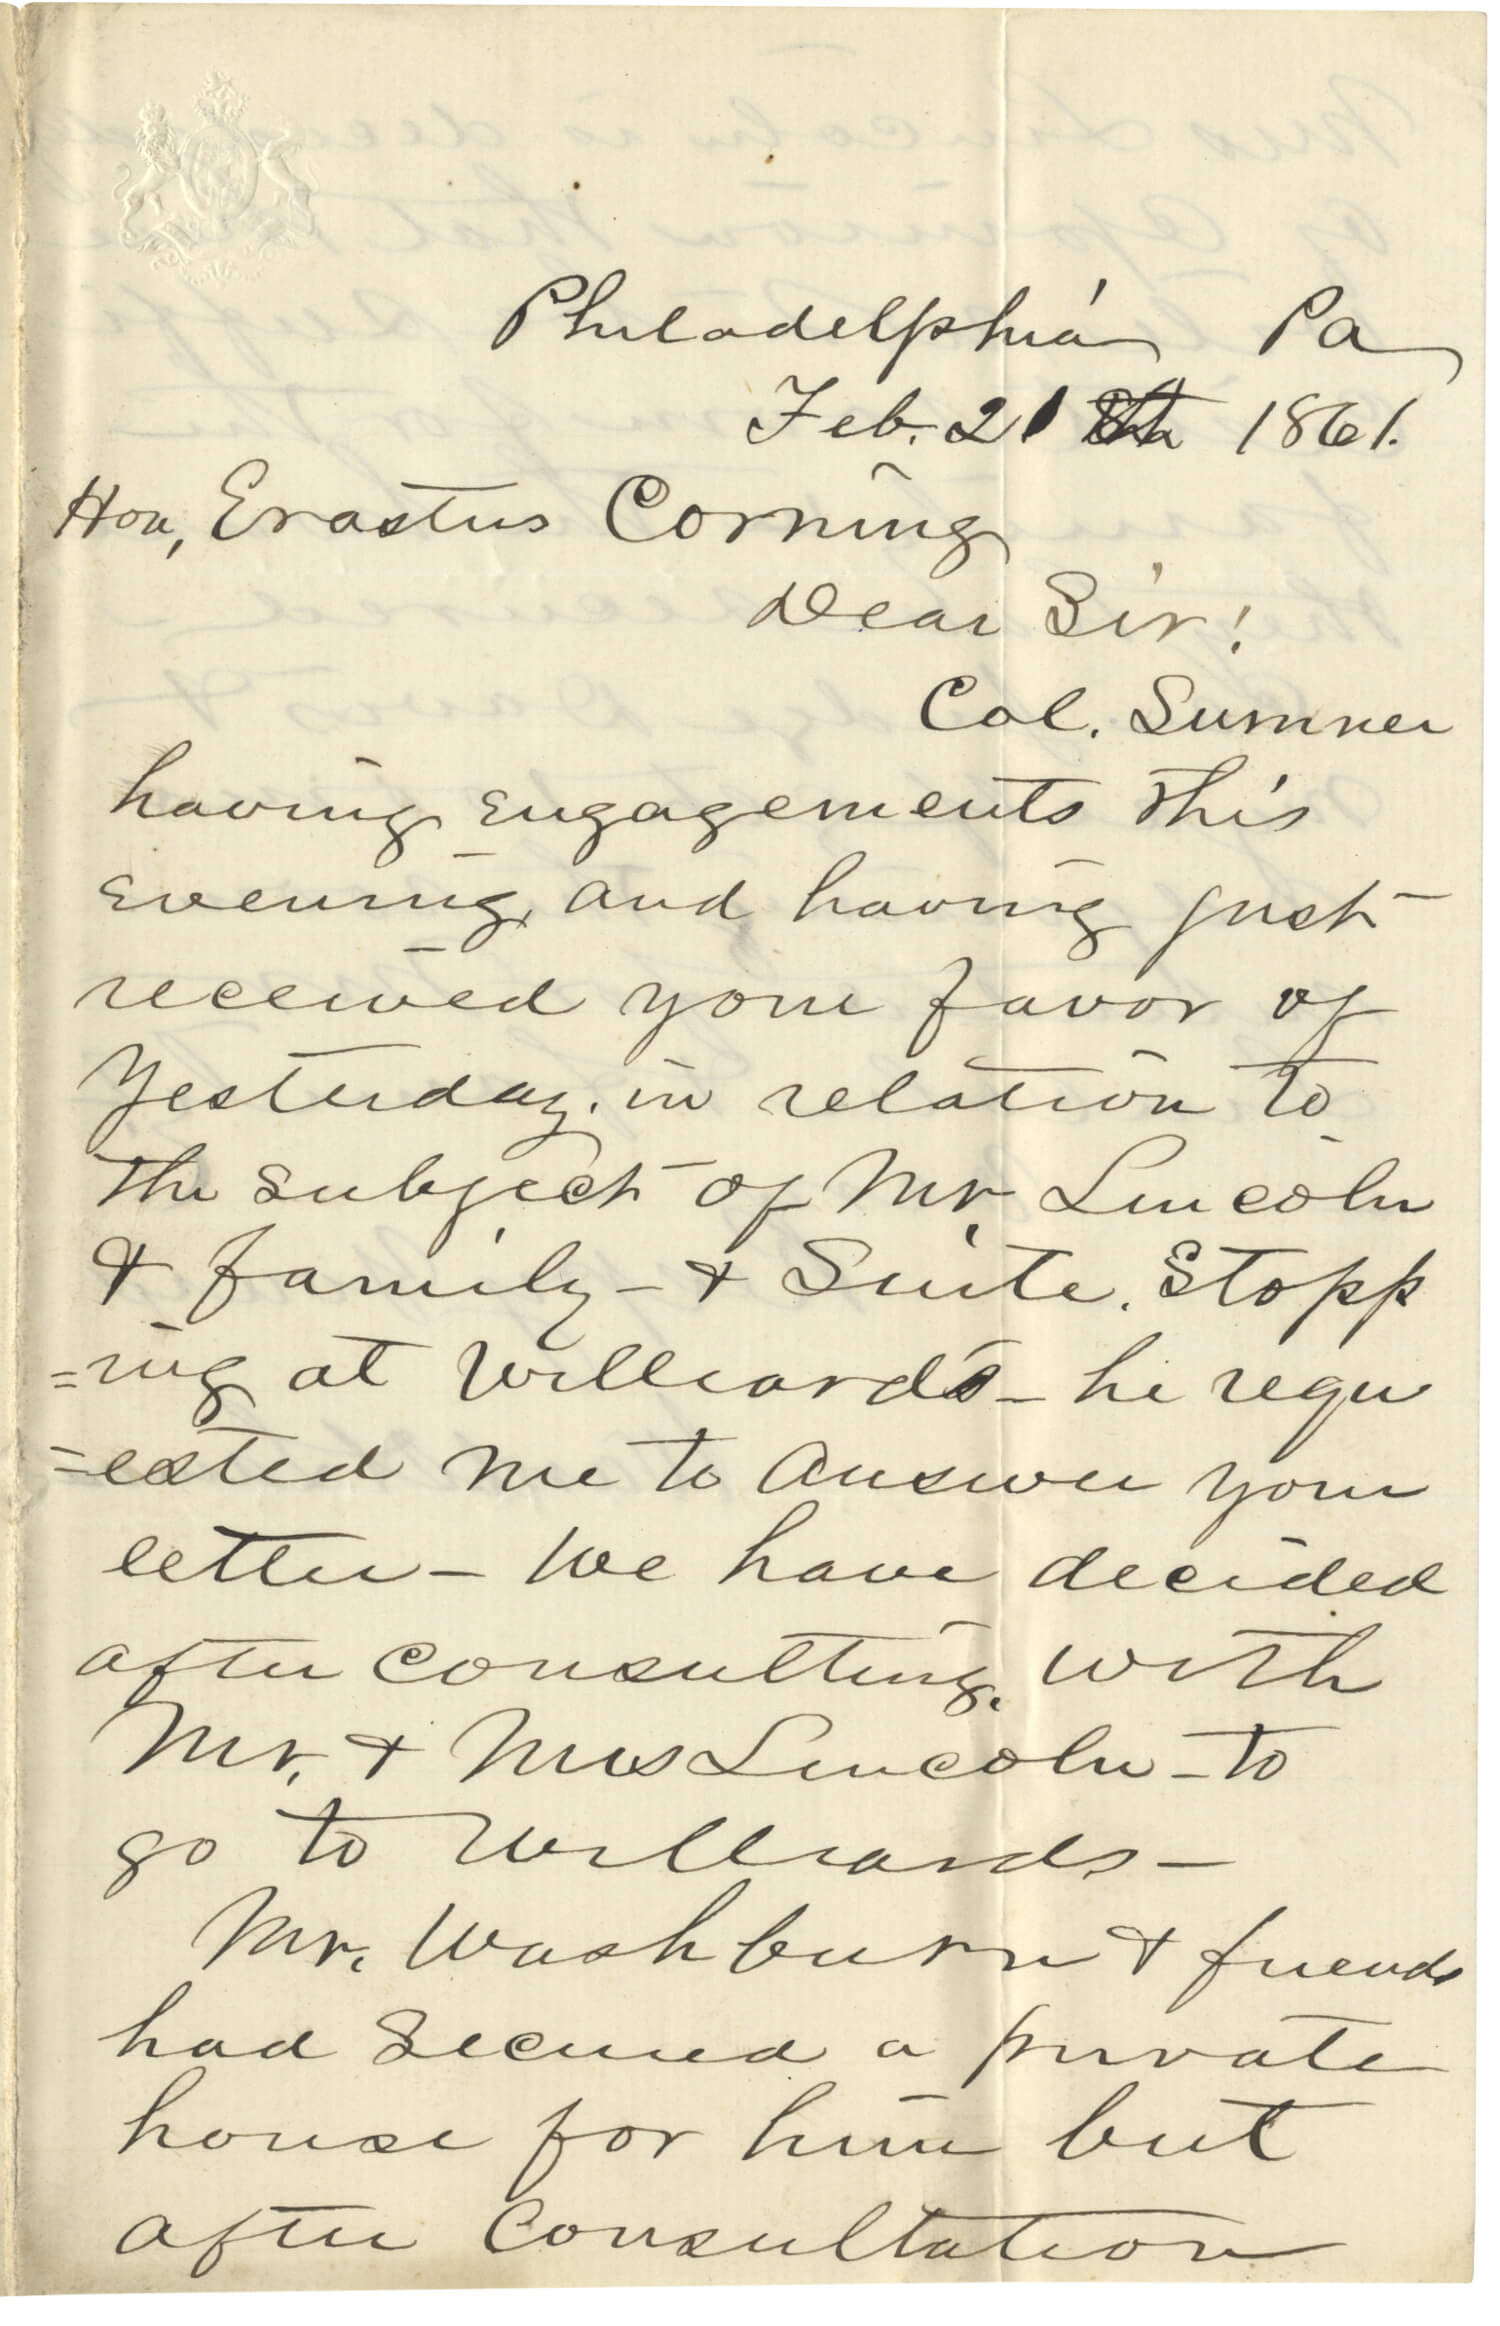 The Baltimore Plot and Attempted Assassination of Abraham Lincoln